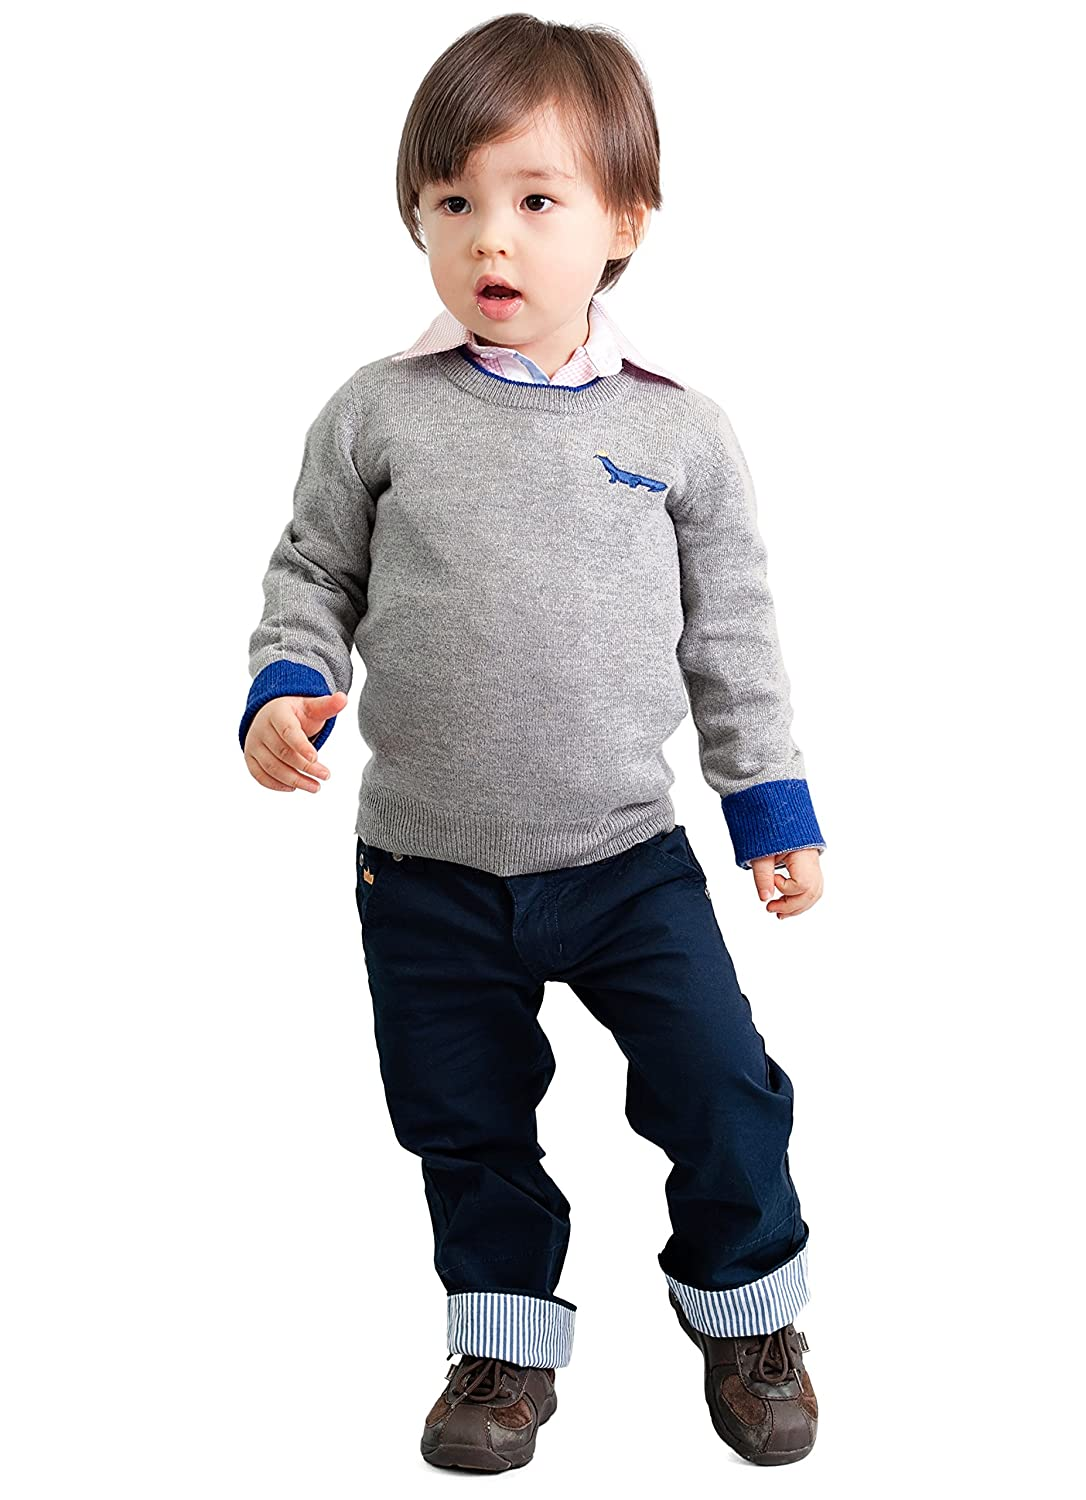 Dakomoda Toddler Boys Cashmere Gray Wool Blend Crew Neck Sweater with Blue Contrasts